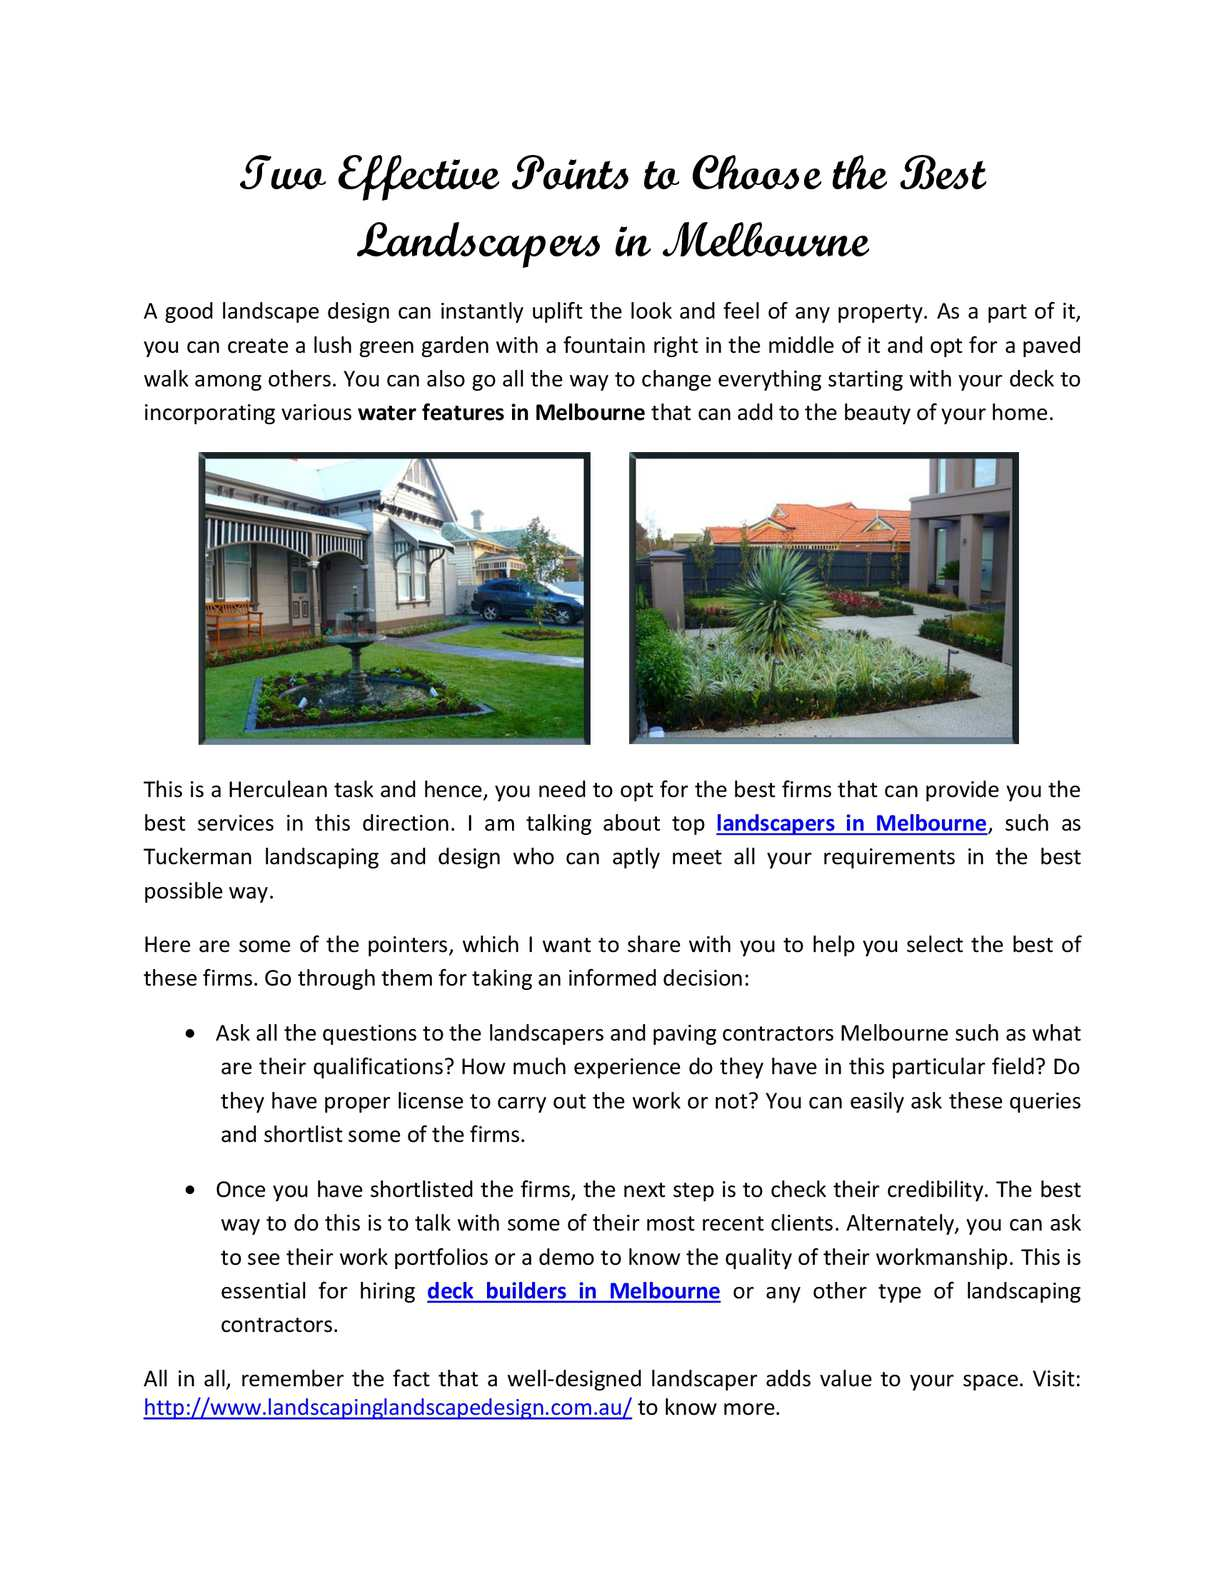 Calameo Tuckerman Landscaping And Design In Melbourne